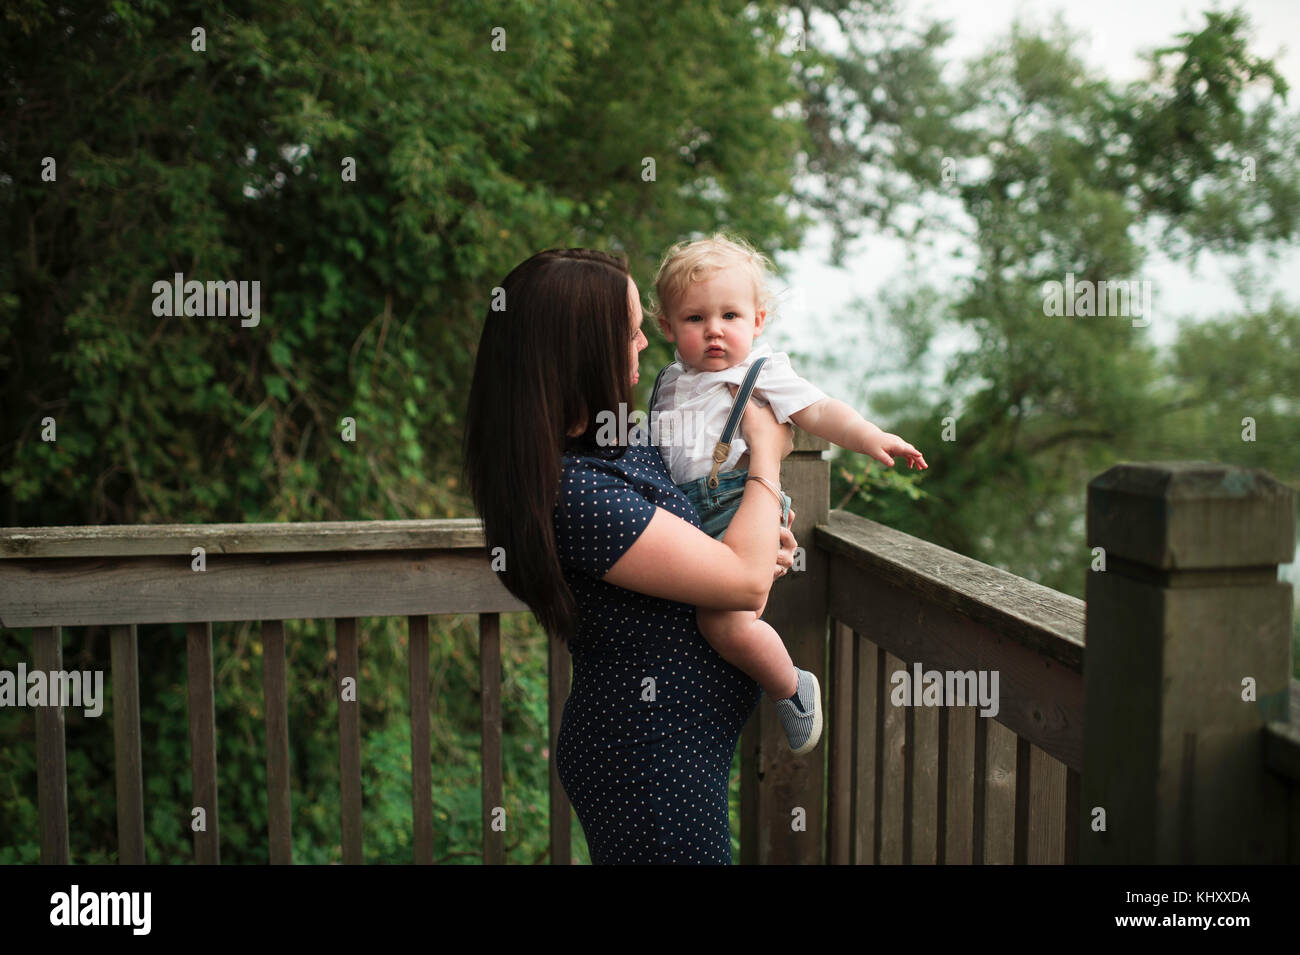 Pregnant woman carrying toddler son on balcony - Stock Image